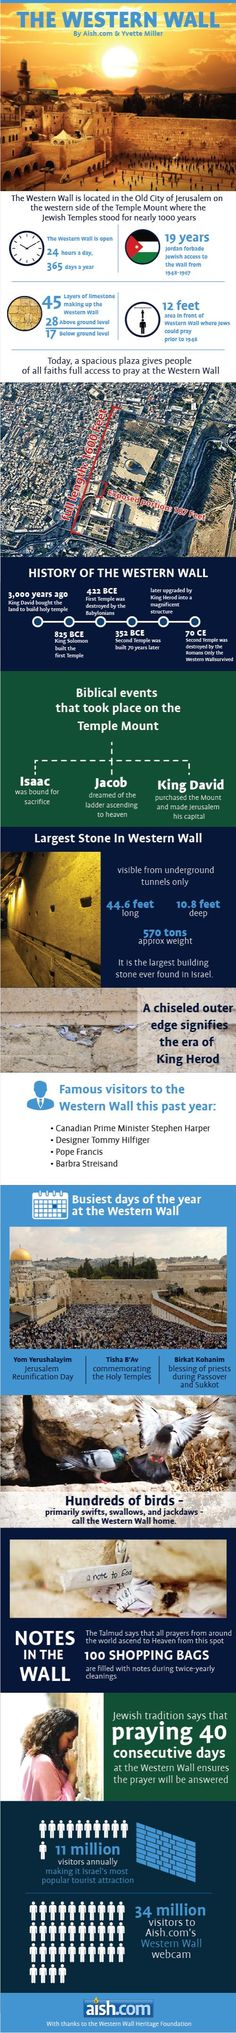 The Western Wall in Jerusalem #Jerusalem #westernwall #infographics